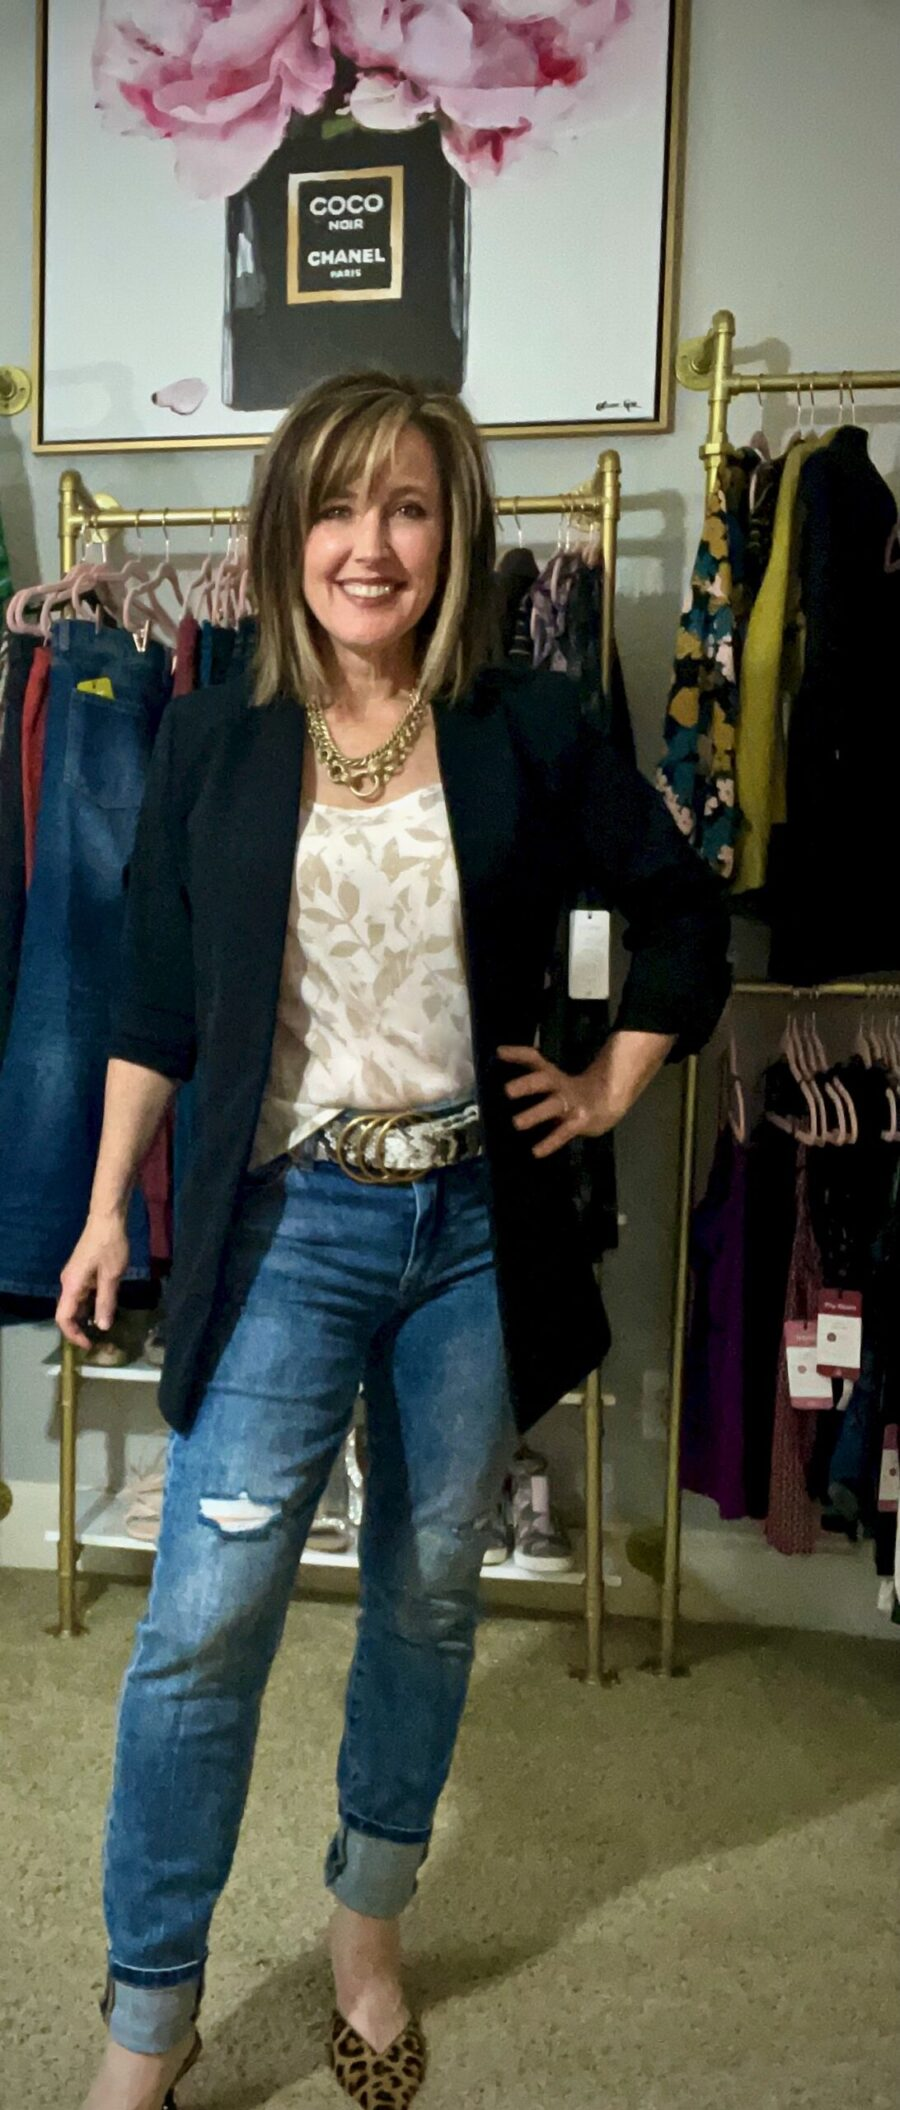 Pretty woman wearing black jacket in luxury clothing boutique